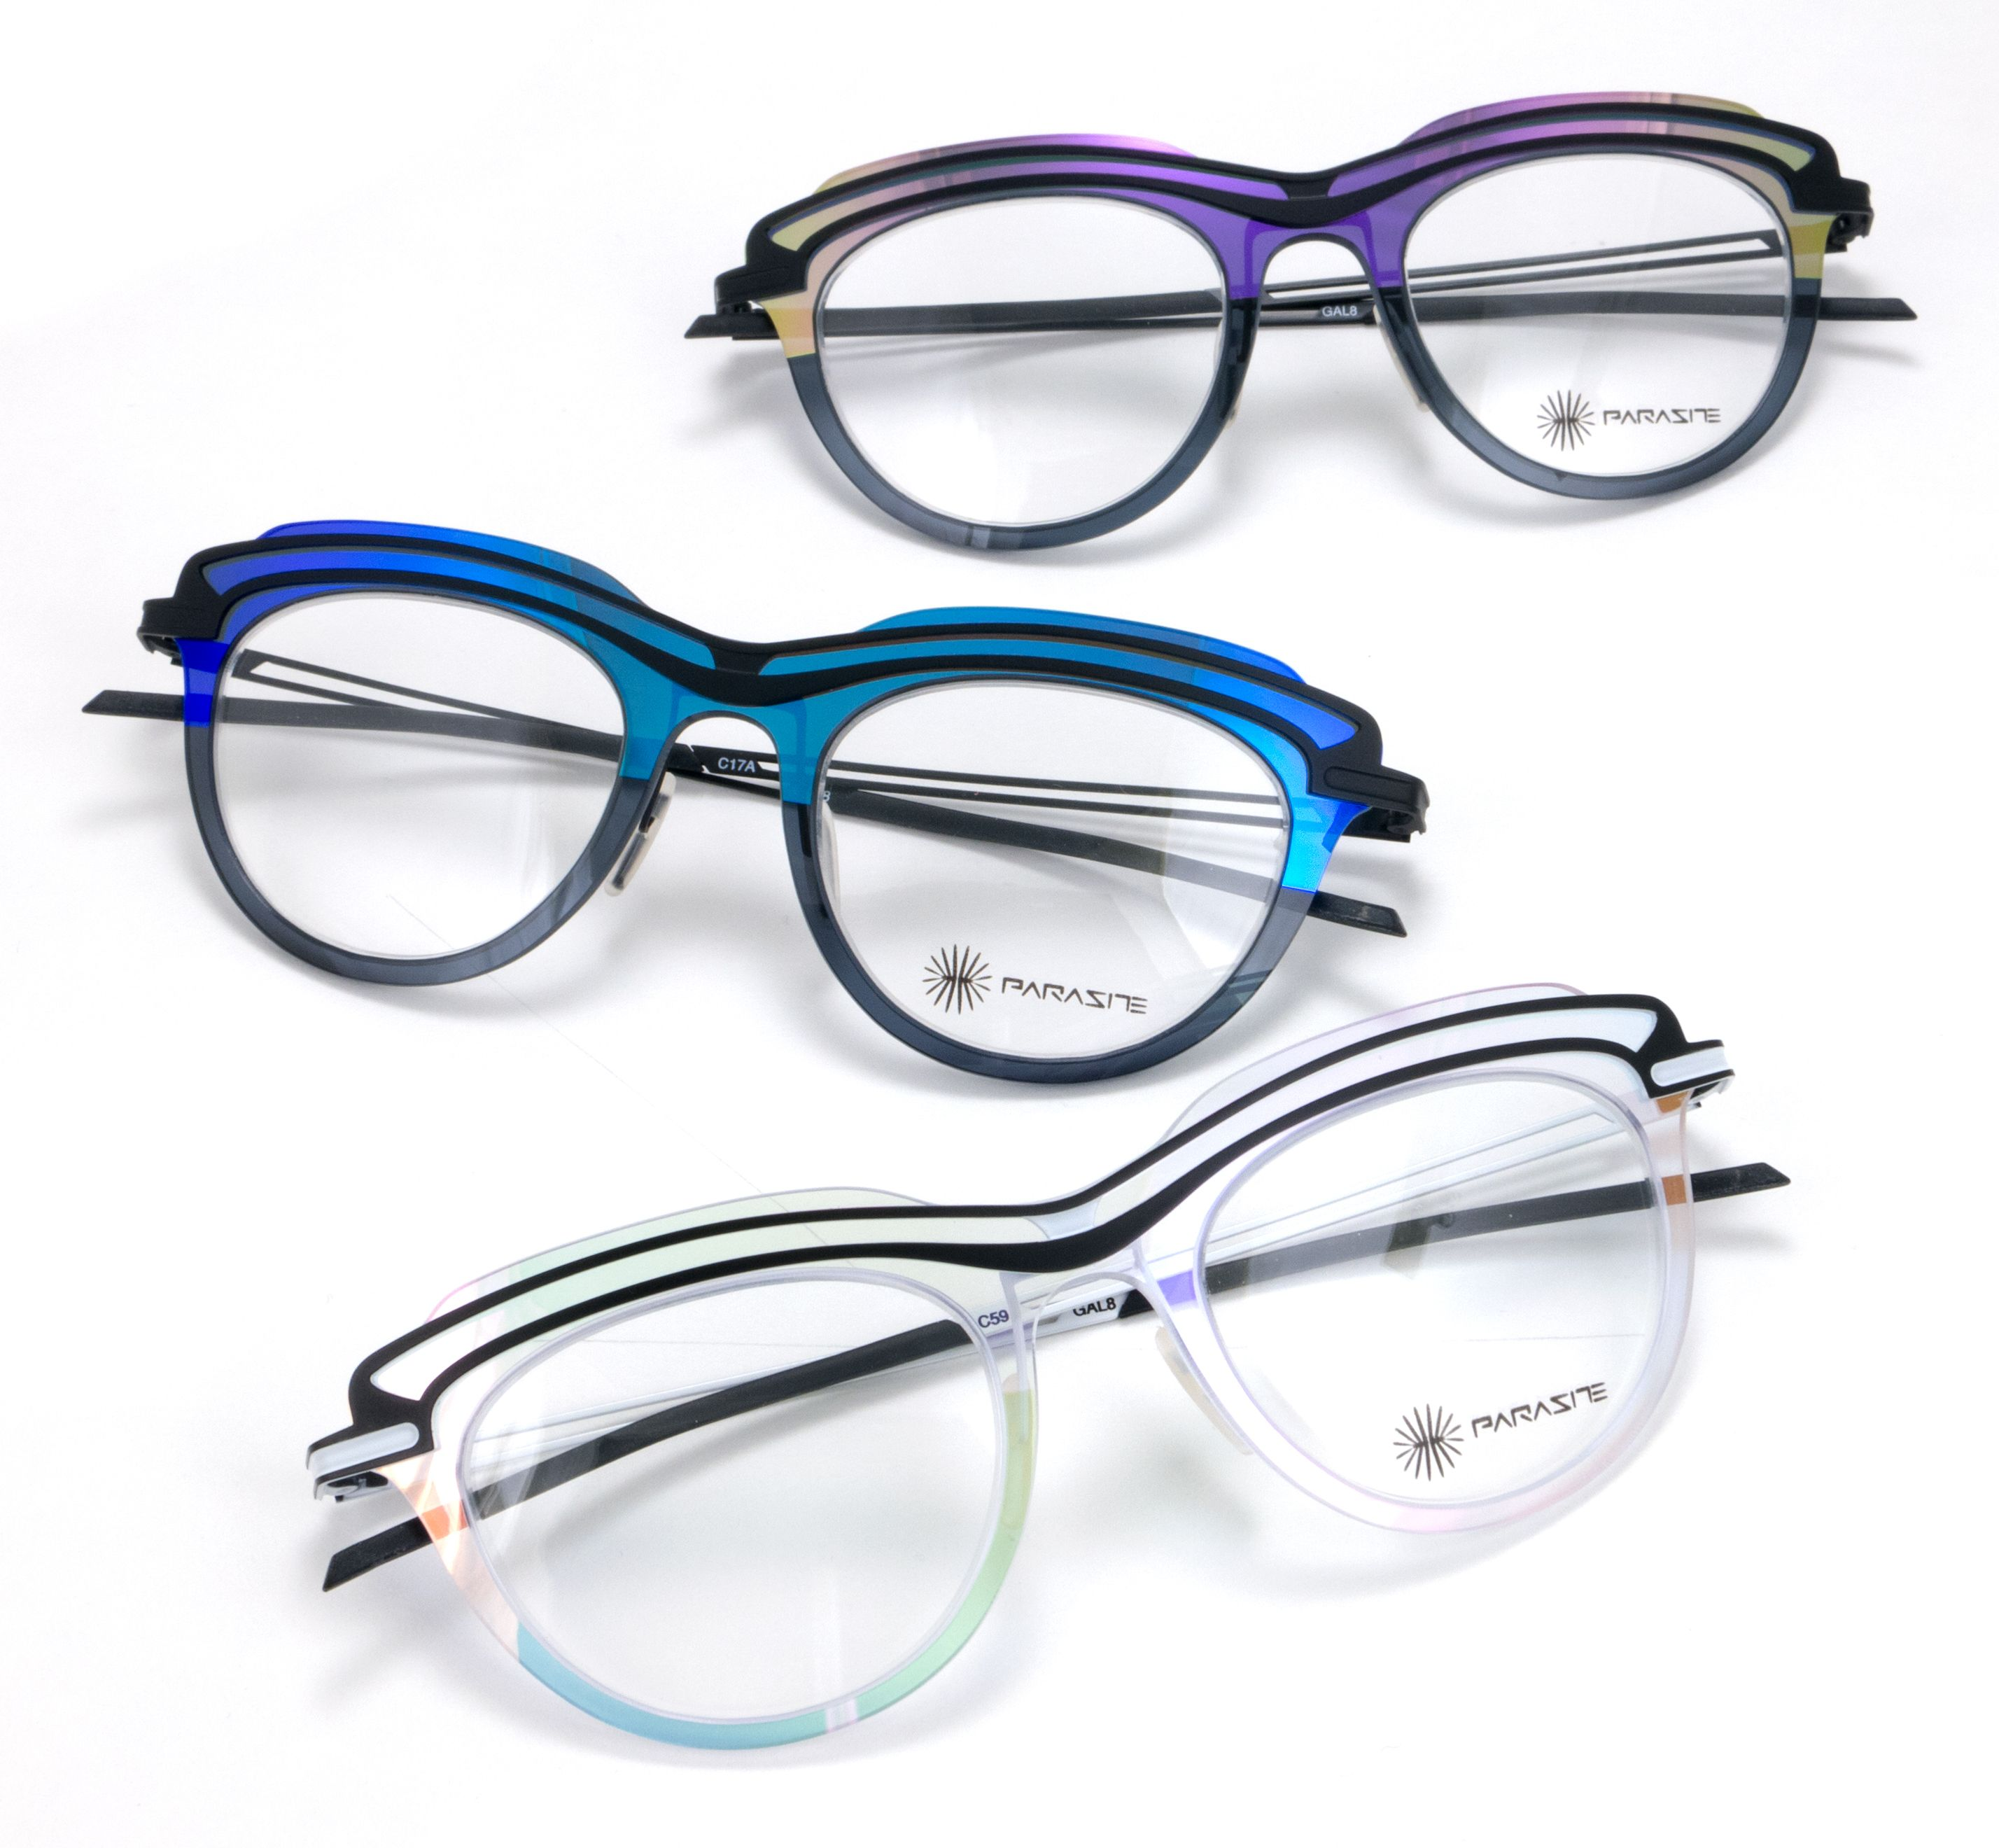 e3d46bd7f6a1 The Parasite Eyewear | Galaxy 8 for women offers an iridescent frame front  for beautiful colors from every angle. Available in 3 colors.